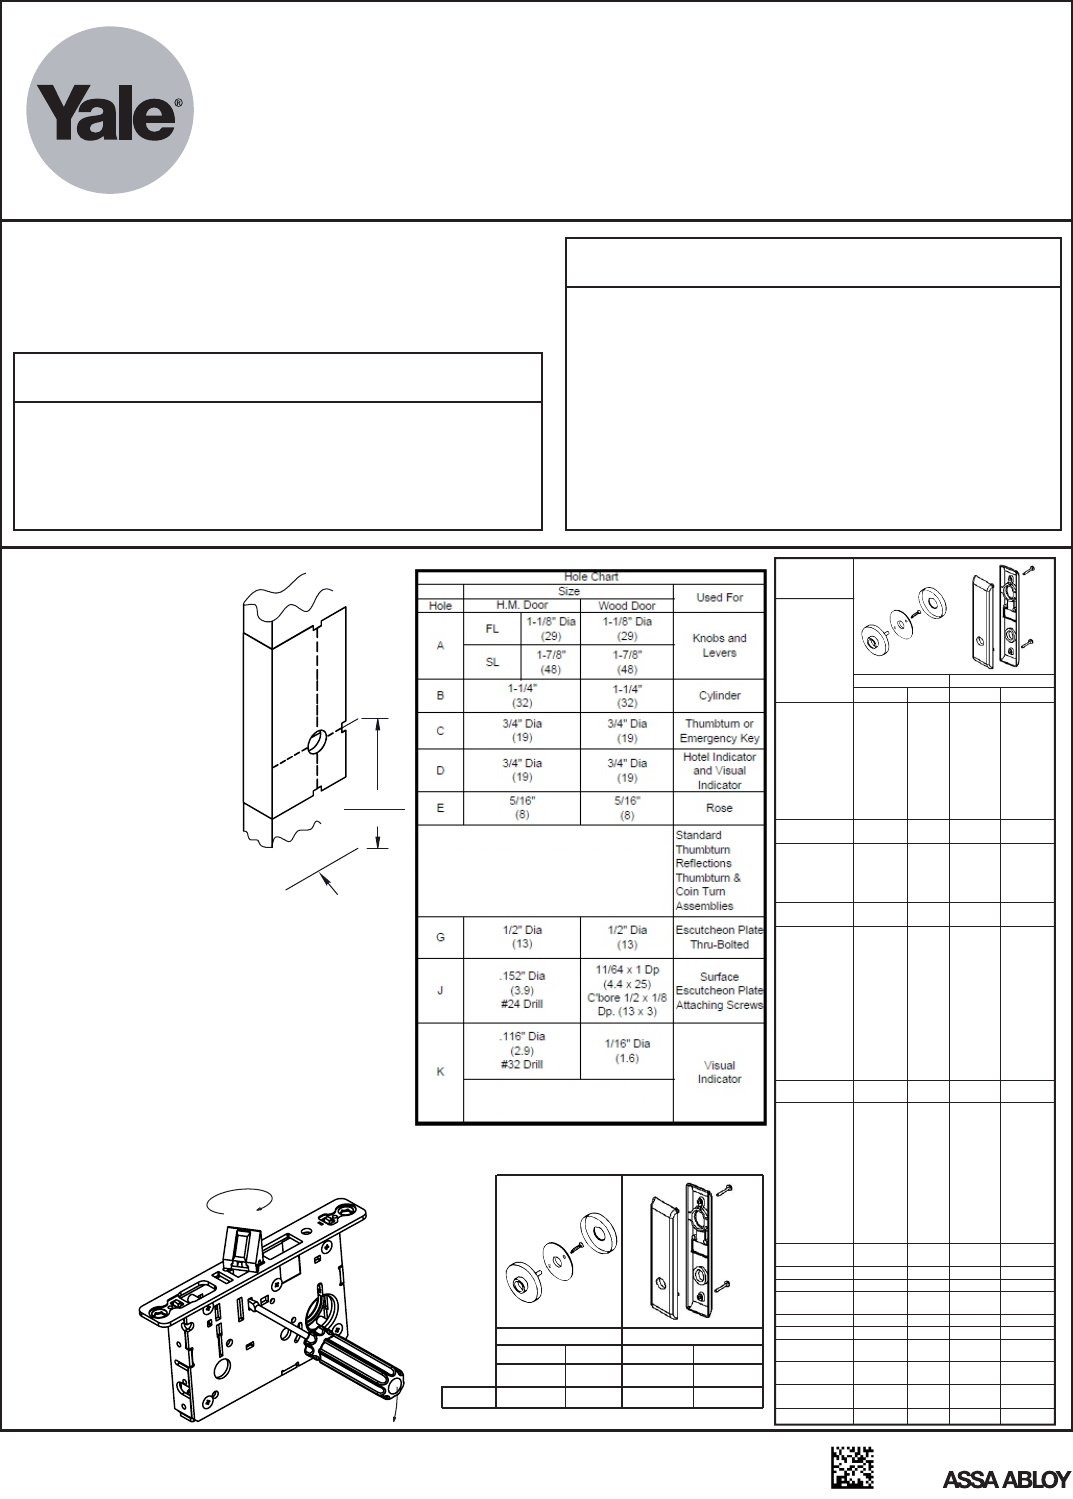 Yale Rocker Switch Wiring Diagram Electrical Diagrams 8800 Series Mortise Lock Installation Instructions 80 9086 0026 Led